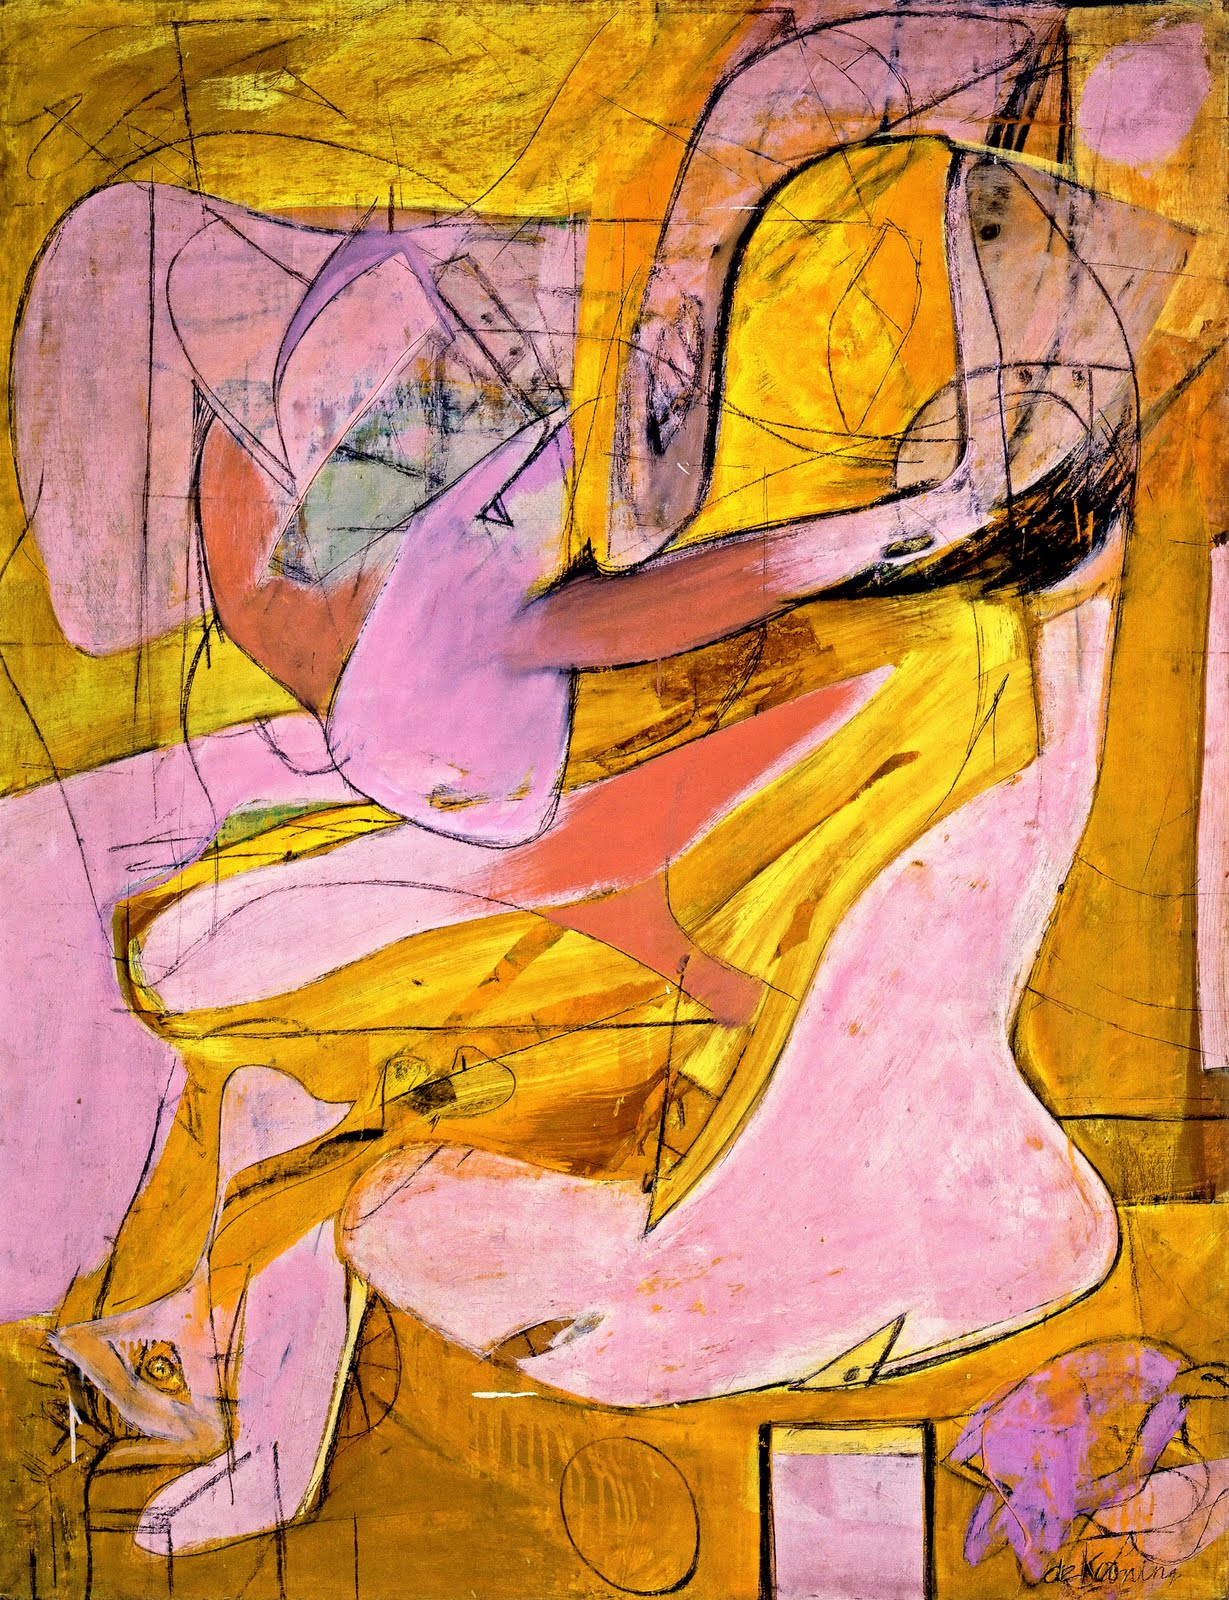 Deportation Constant Fear For >> Counterlight's Peculiars: Willem de Kooning: The ...